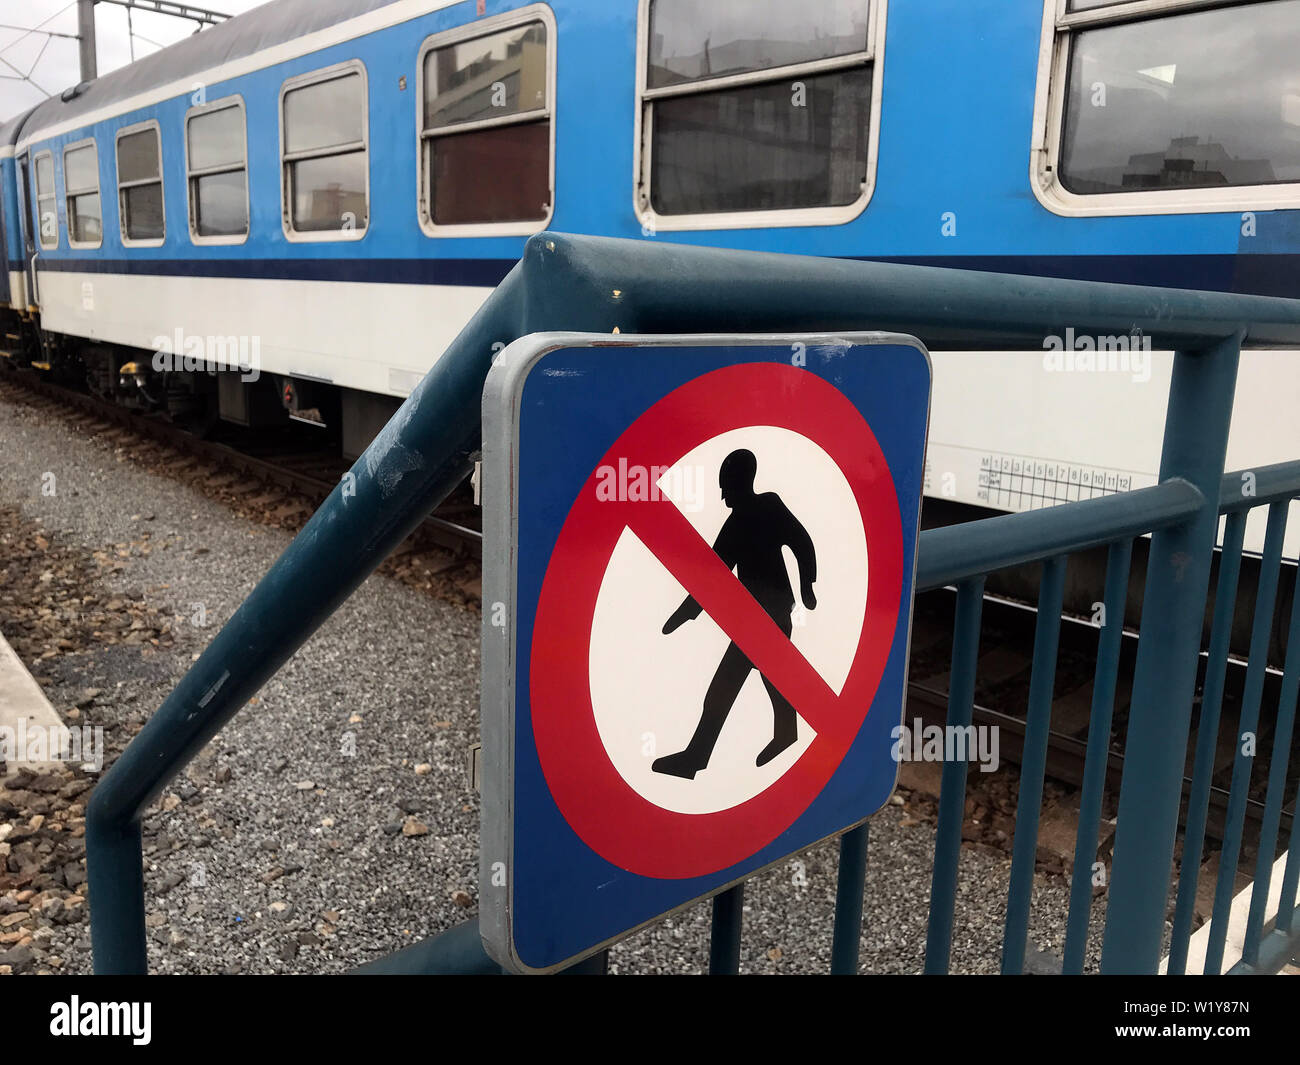 Signs for prohibition of walking on the track, the train is standing on the tracks in the background. - Stock Image